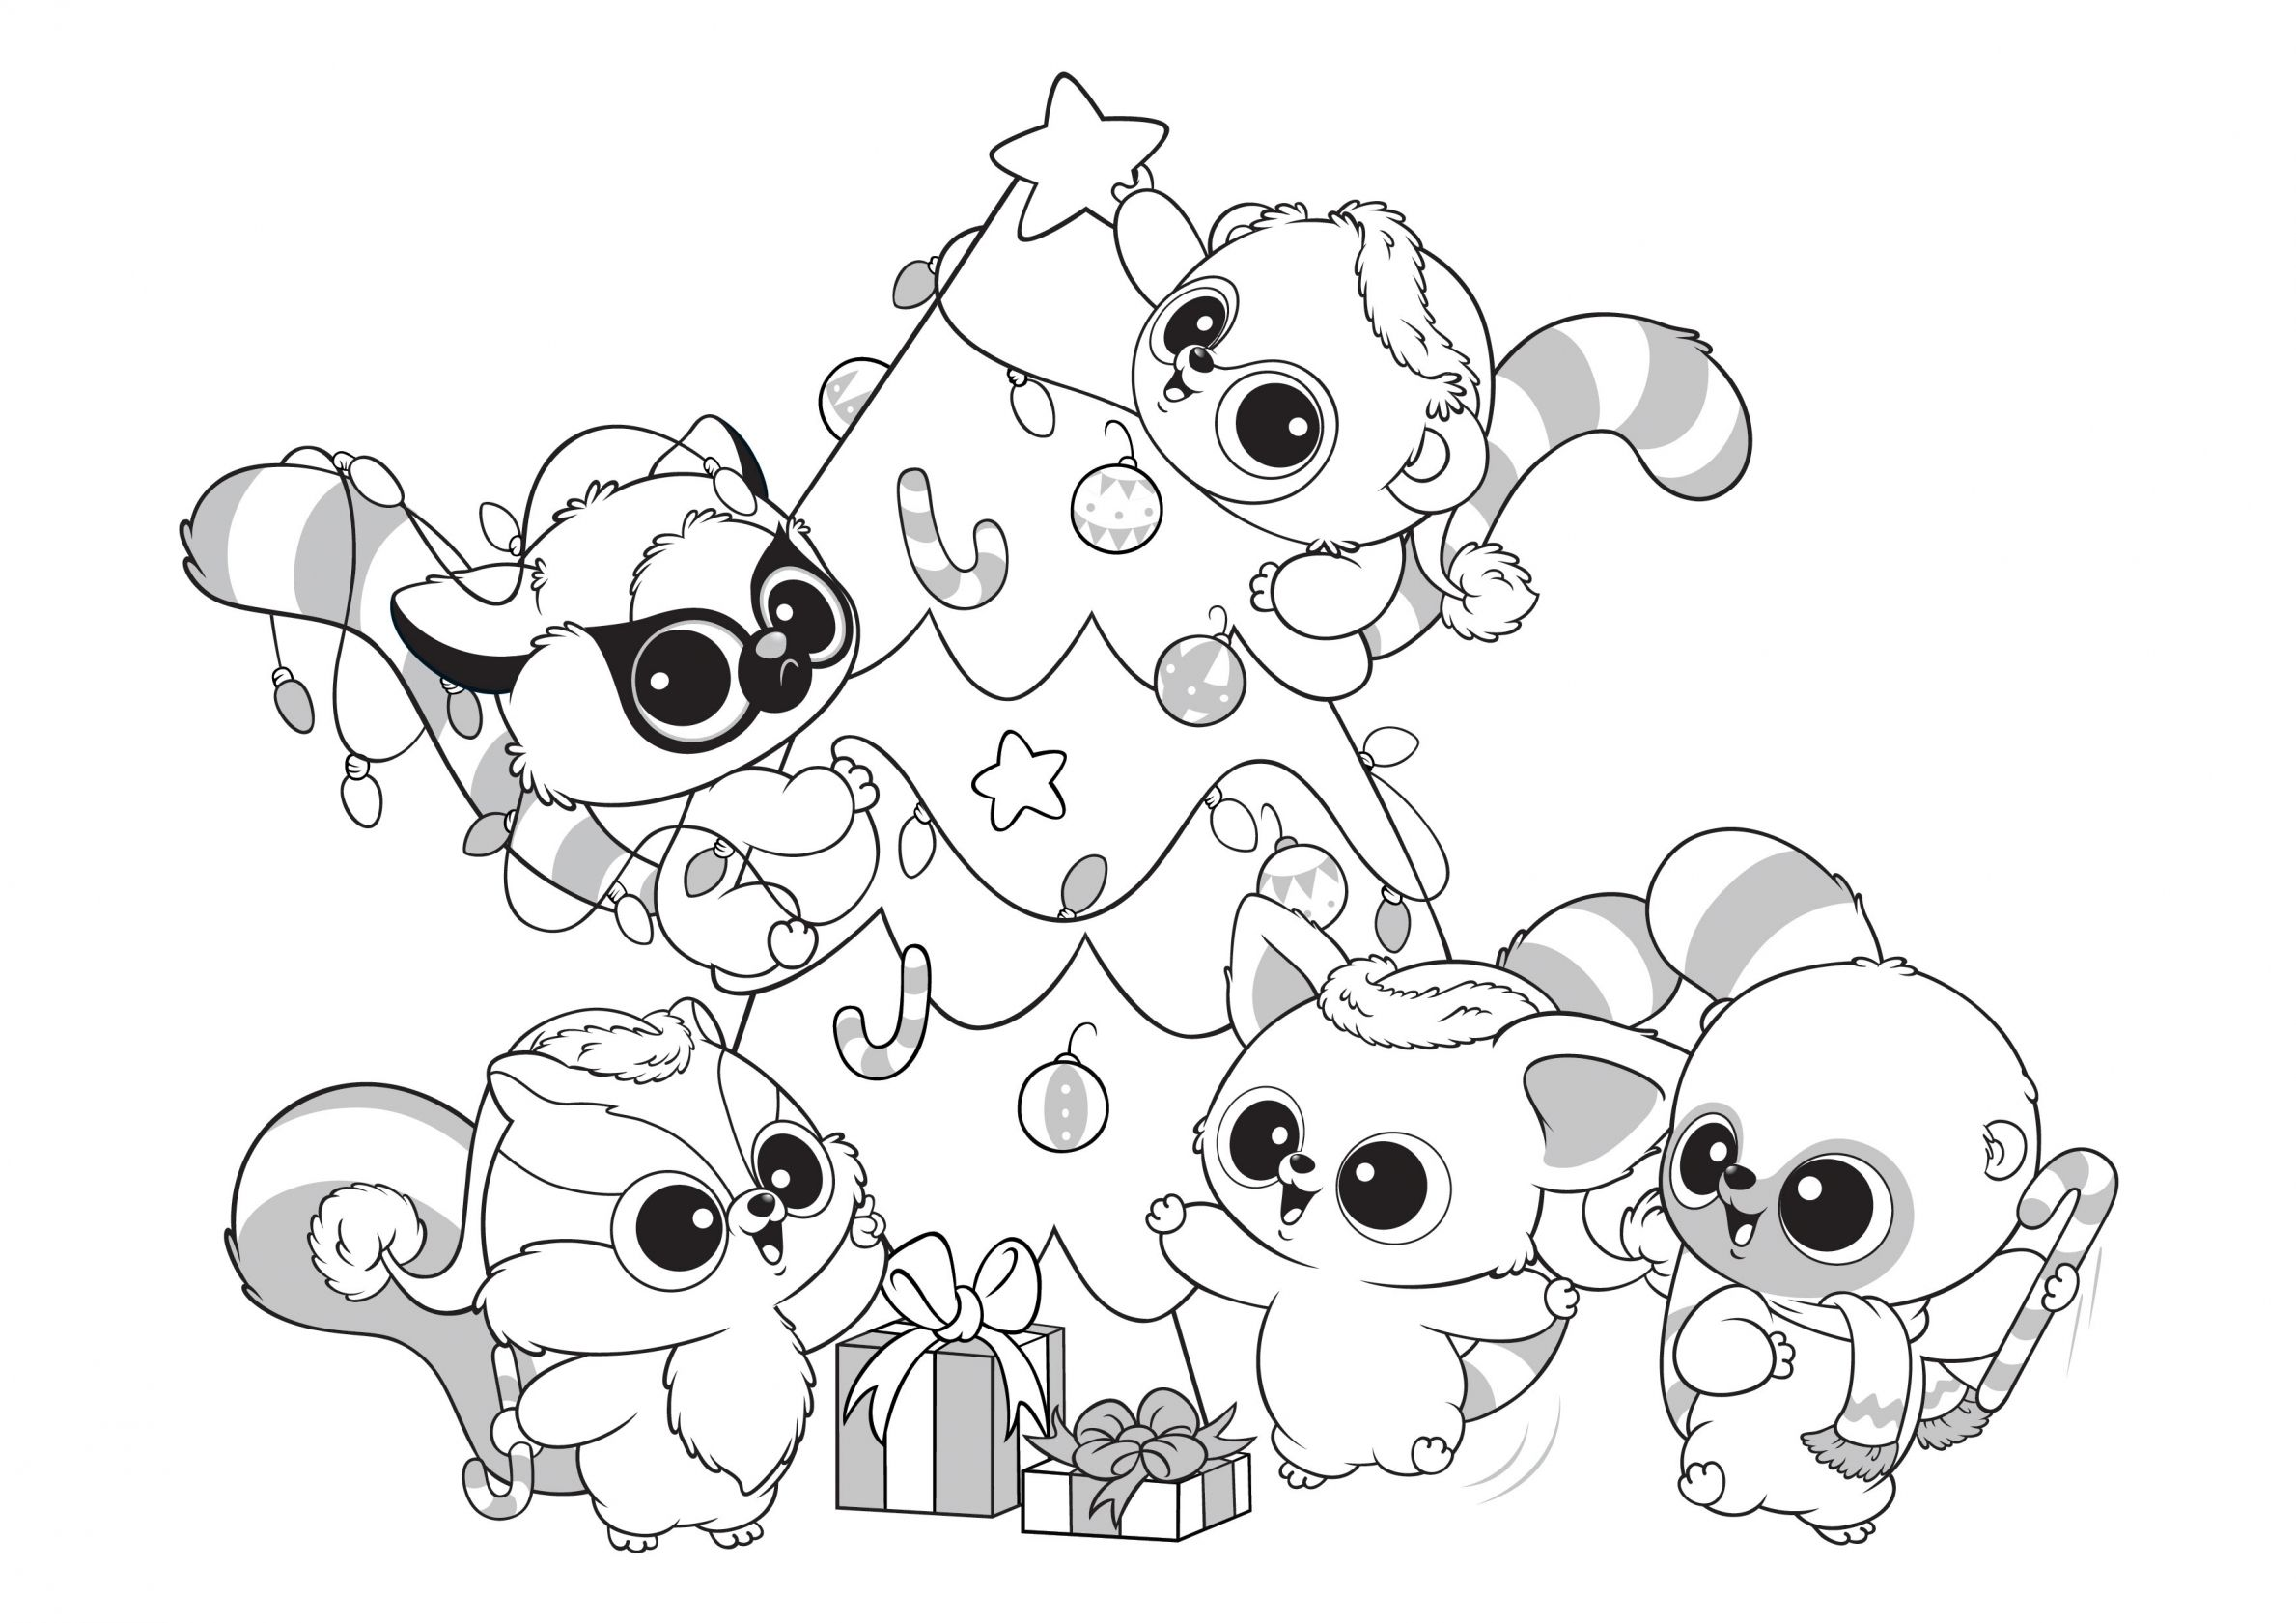 Yoohoo And Friends Coloring Pages Coloring Home Yoohoo And Friends Coloring Pages